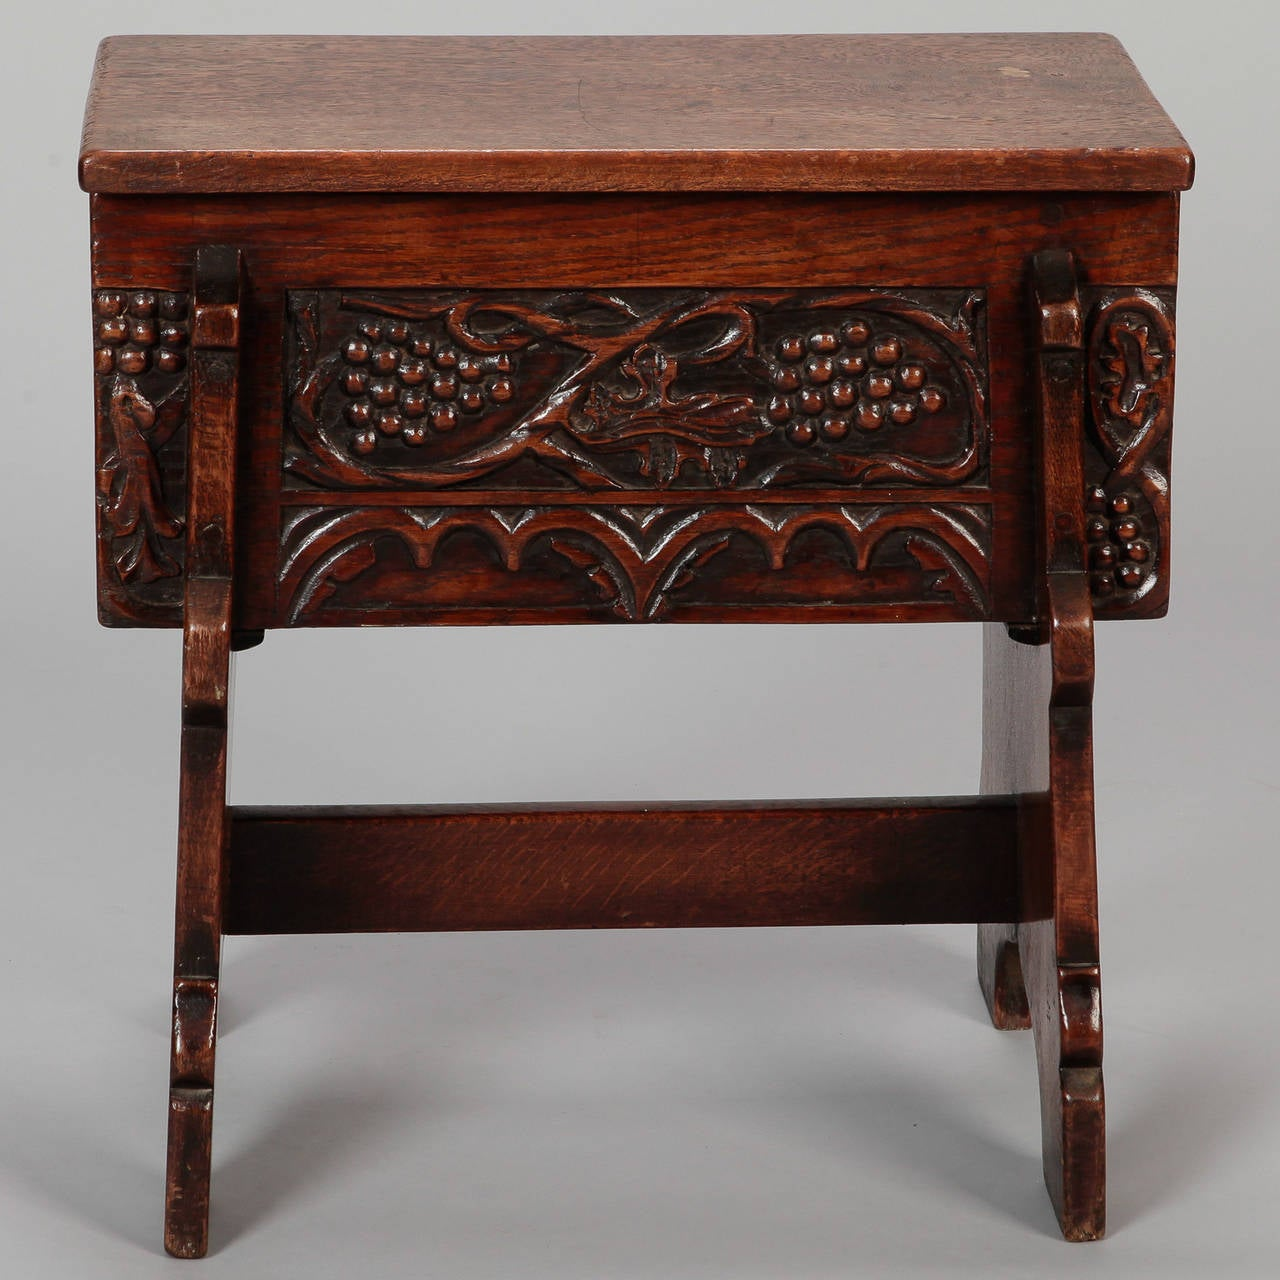 Carved French Oak Stool With Grapes For Sale At 1stdibs